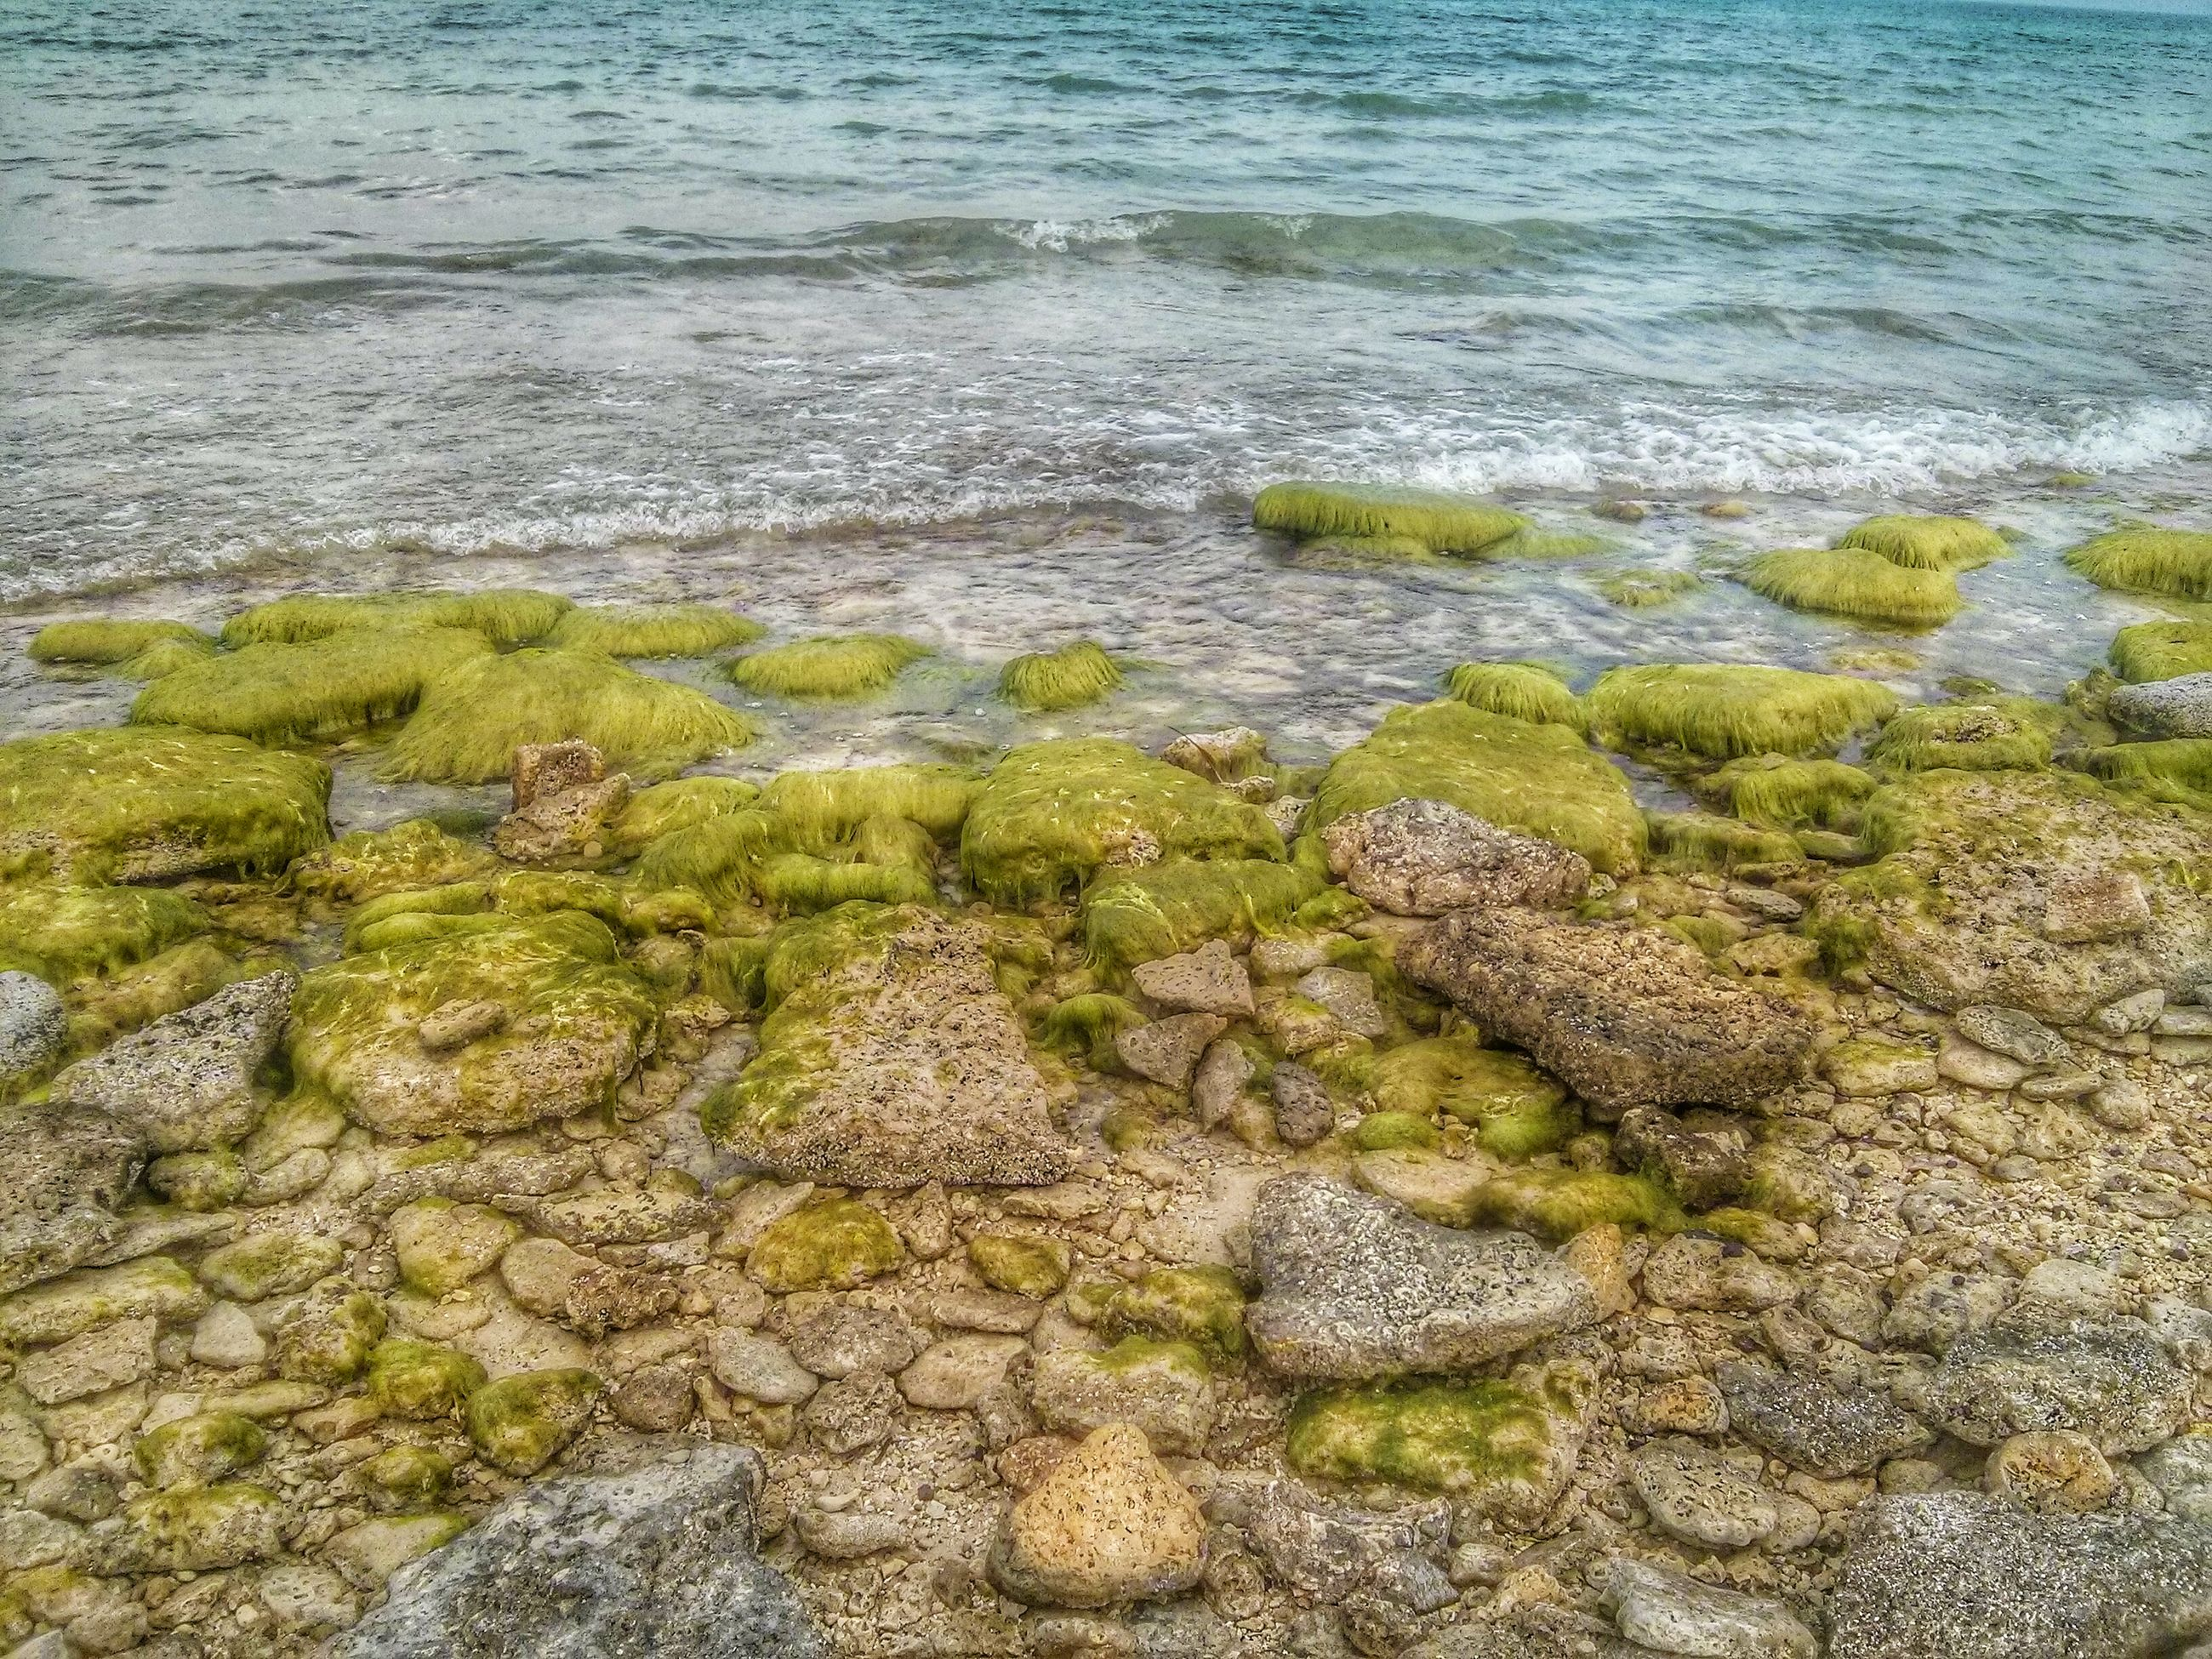 water, sea, high angle view, tranquility, rock - object, nature, beauty in nature, tranquil scene, beach, scenics, shore, day, coastline, outdoors, idyllic, rock, stone - object, rippled, no people, sunlight